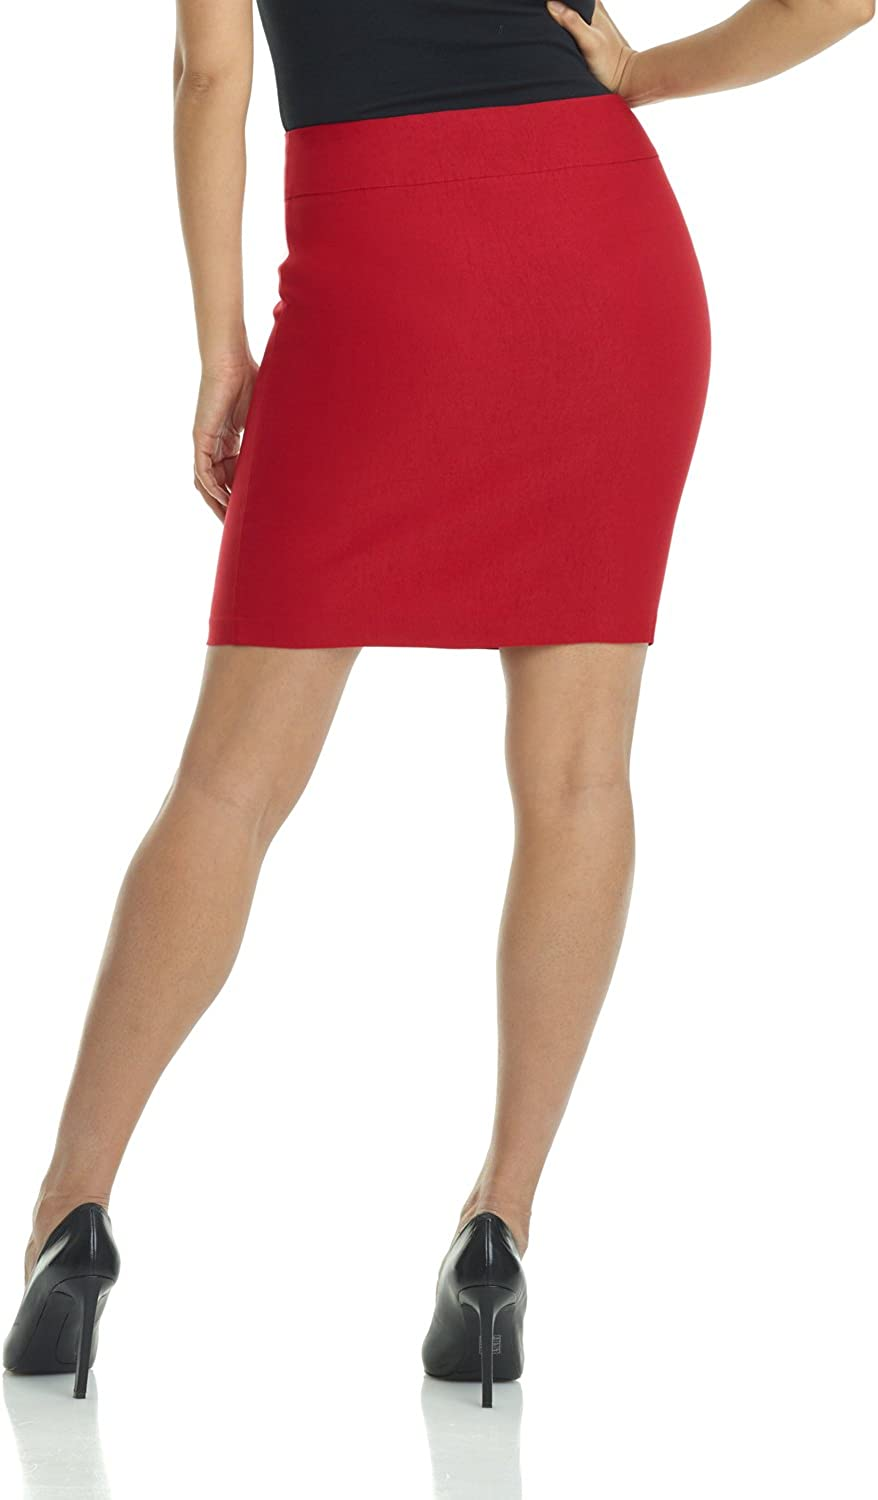 Small,Red Rekucci Womens Ease Into Comfort Above The Knee Stretch Pencil Skirt 19 inch